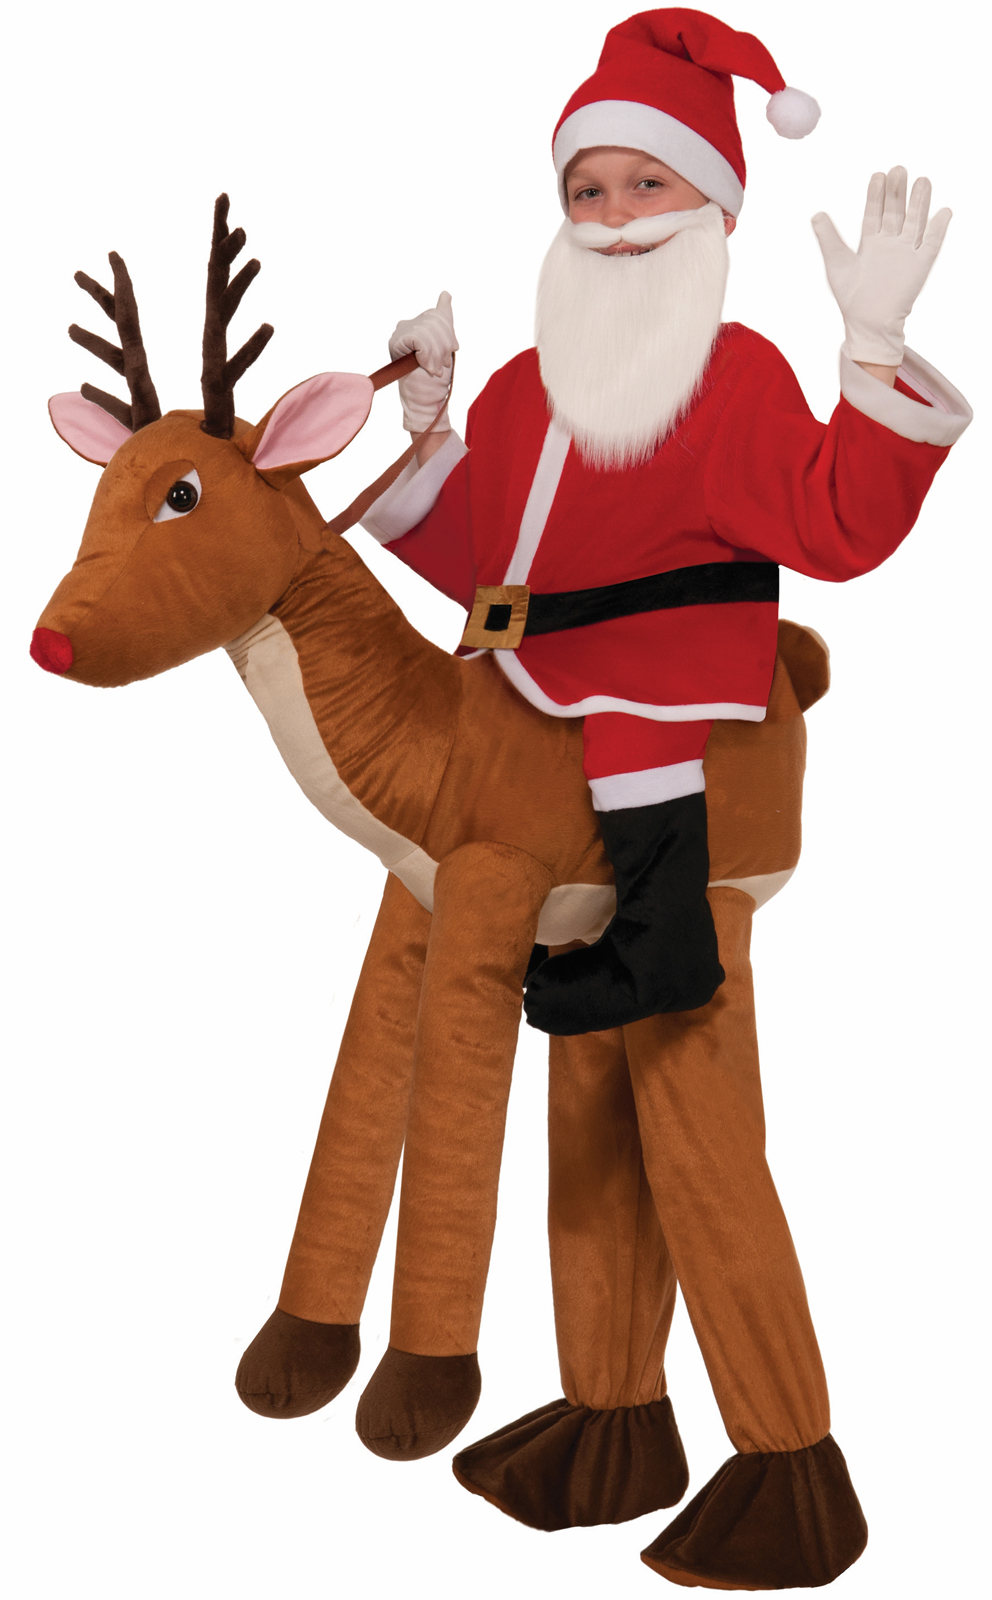 Ride a Reindeer Child Costume | BuyCostumes.com